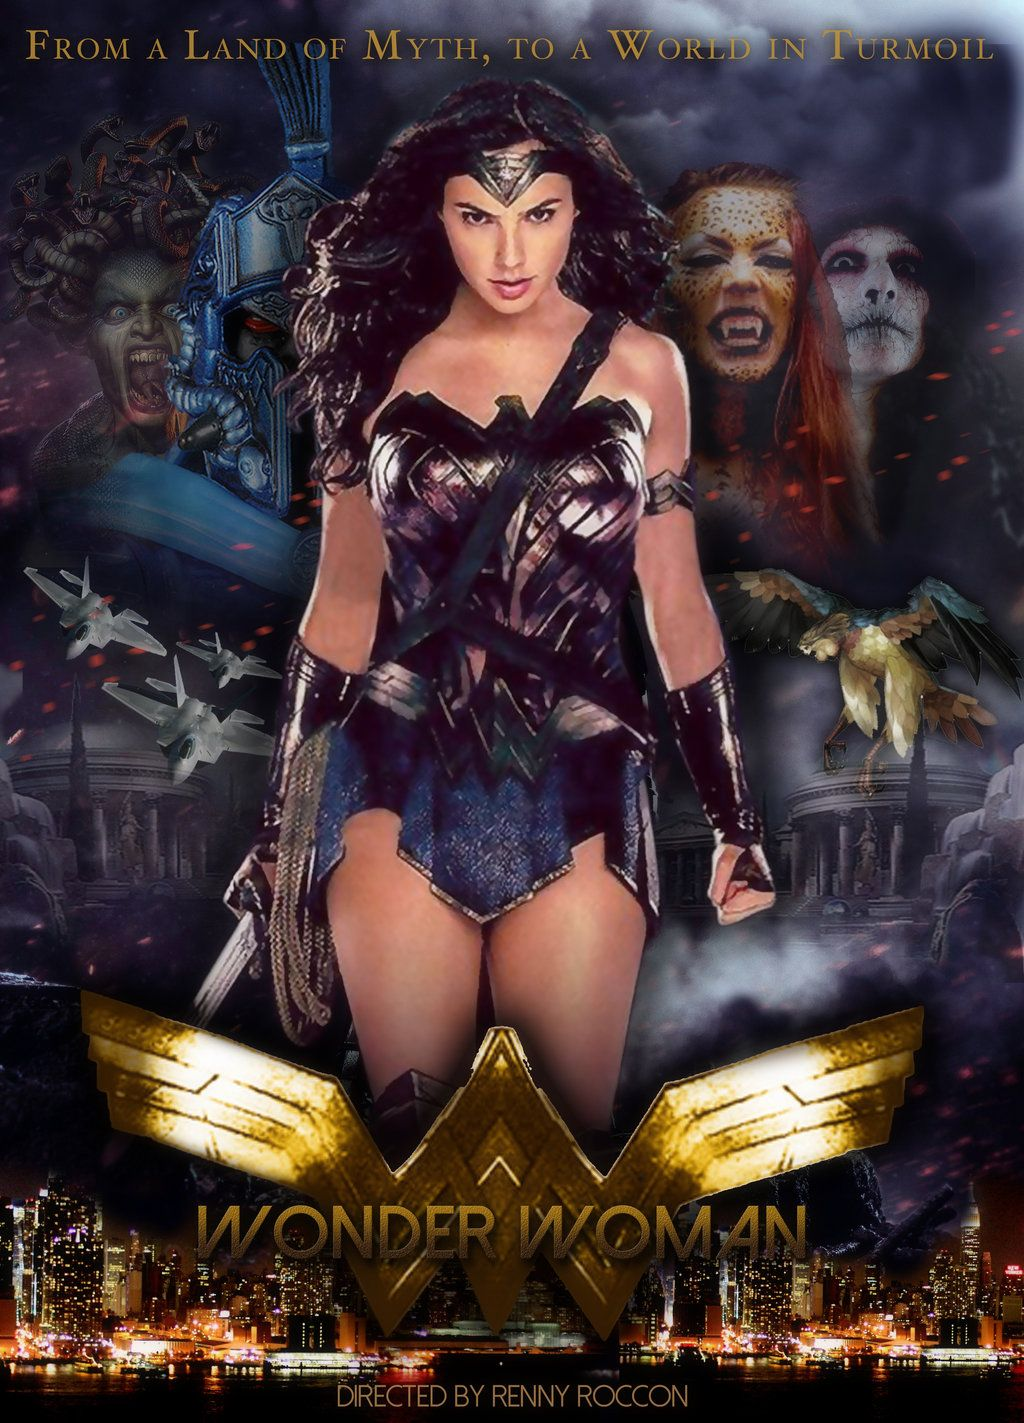 full streaming wonder woman full movie playnow http